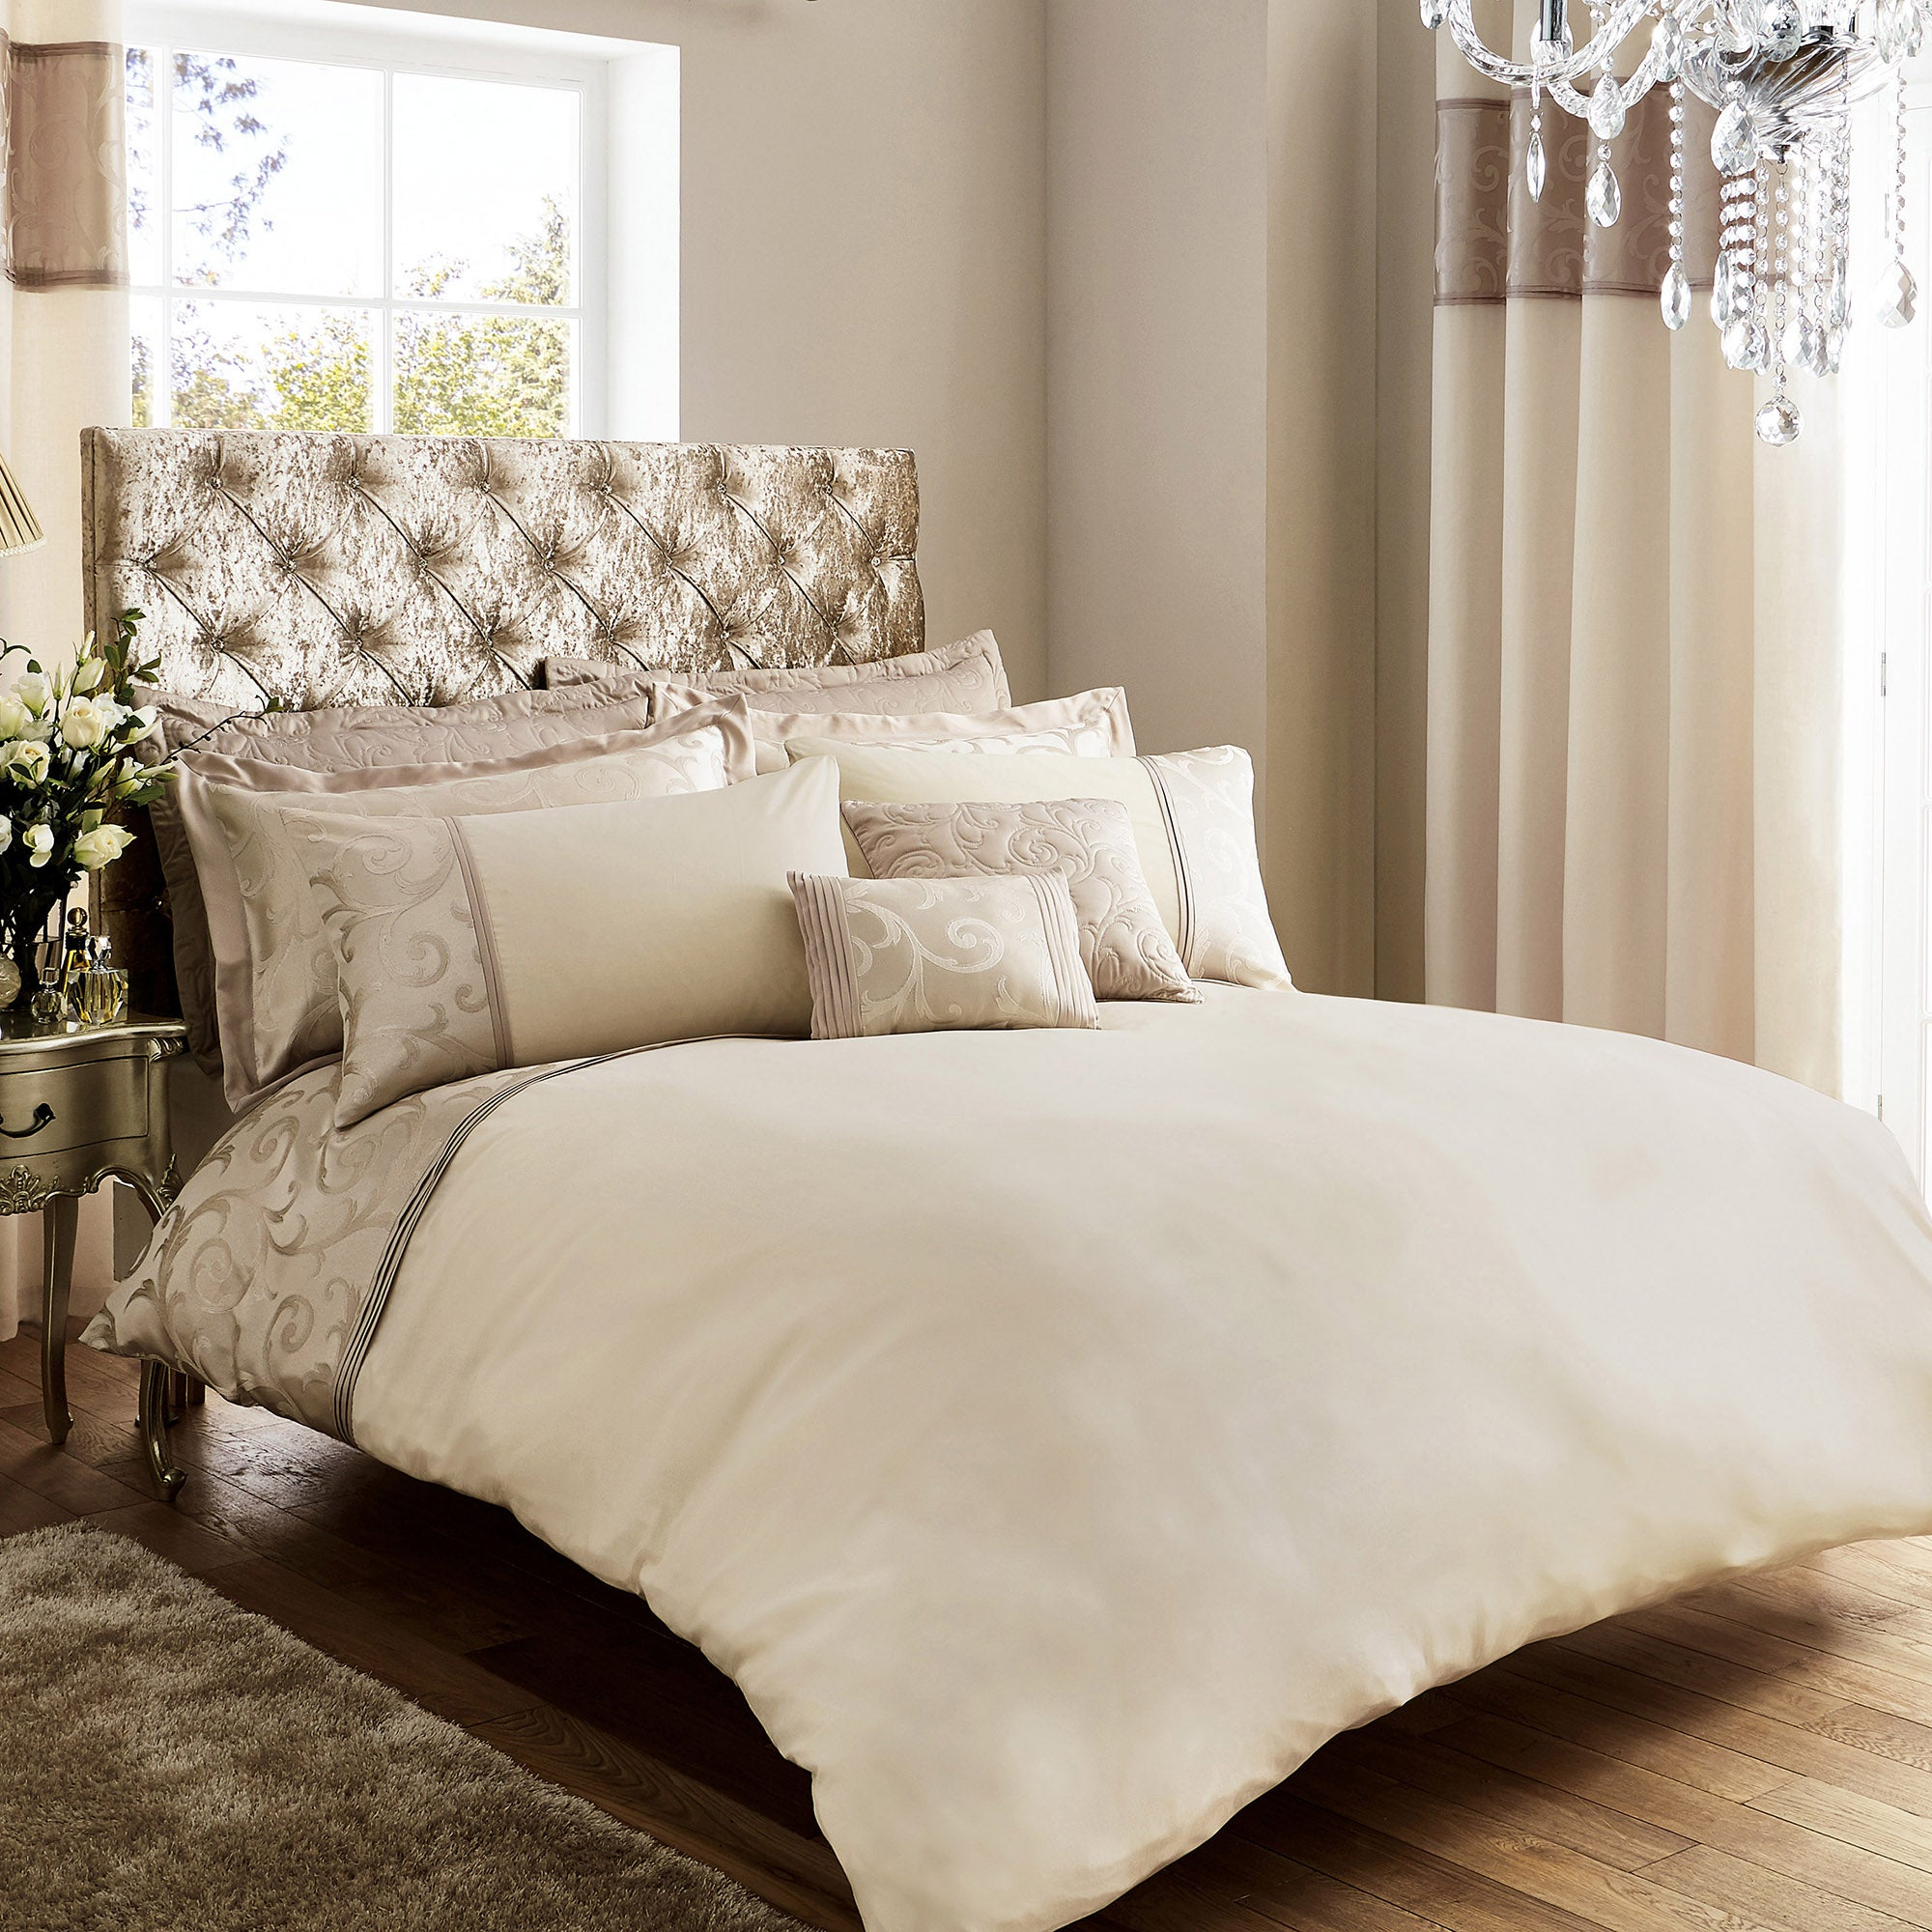 lucia natural bed linen collection dunelm. Black Bedroom Furniture Sets. Home Design Ideas